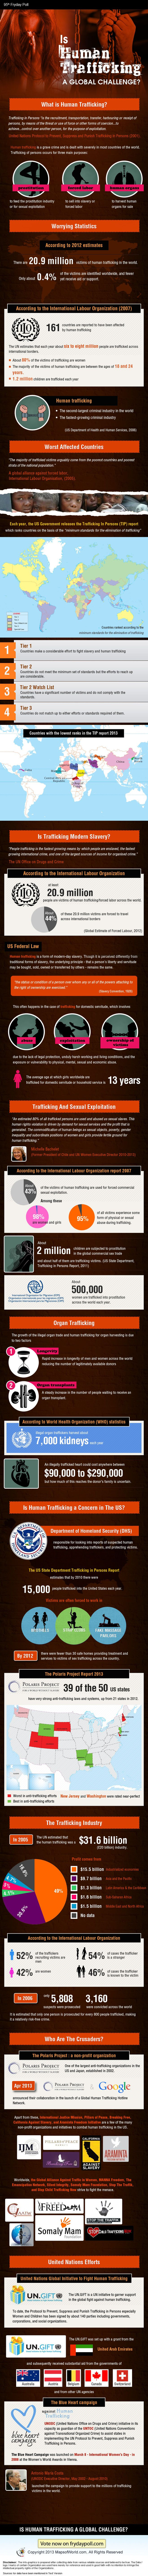 An essential Info-graphic about Human Trafficking worldwide. Learn about causes of human trafficking, worst affected countries, UN and ILO trafficking reports, cost of human trafficking, initiatives against human trafficking and modern slavery.